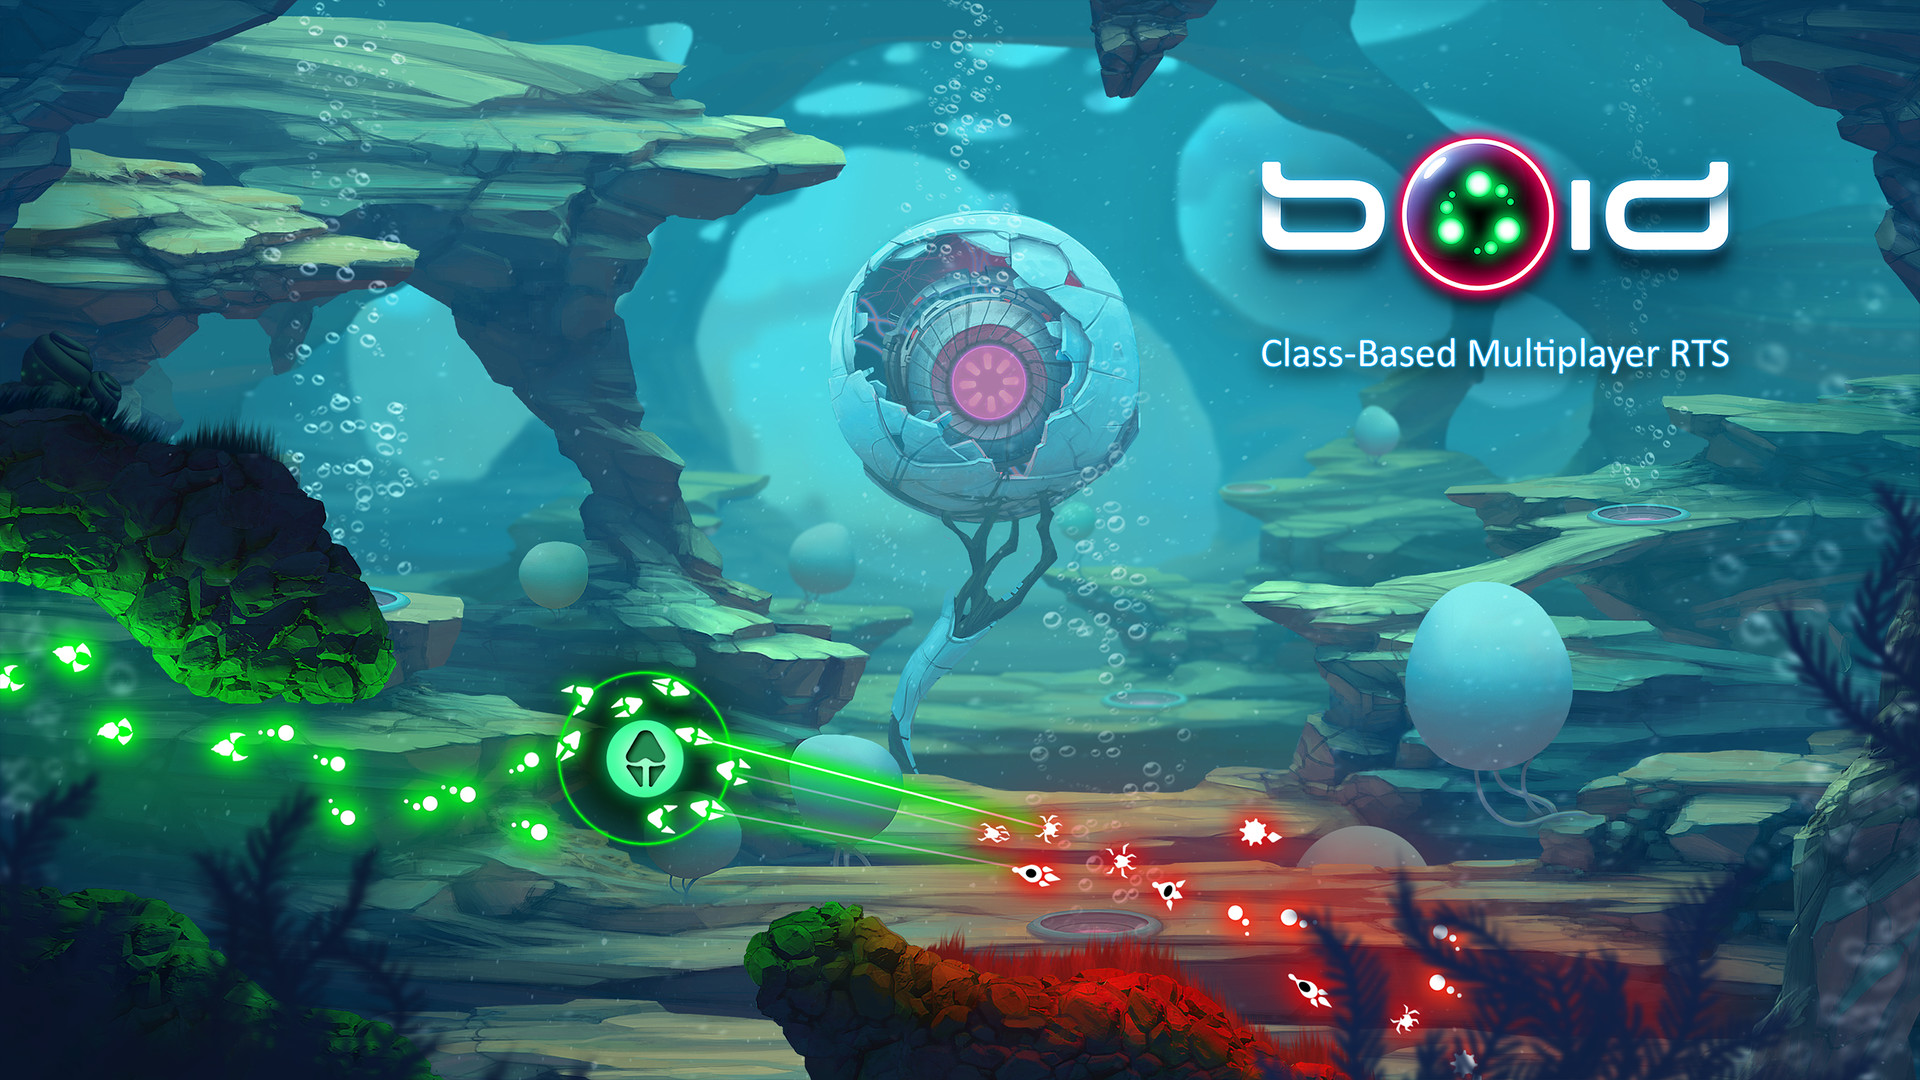 Boid Setup Free Download